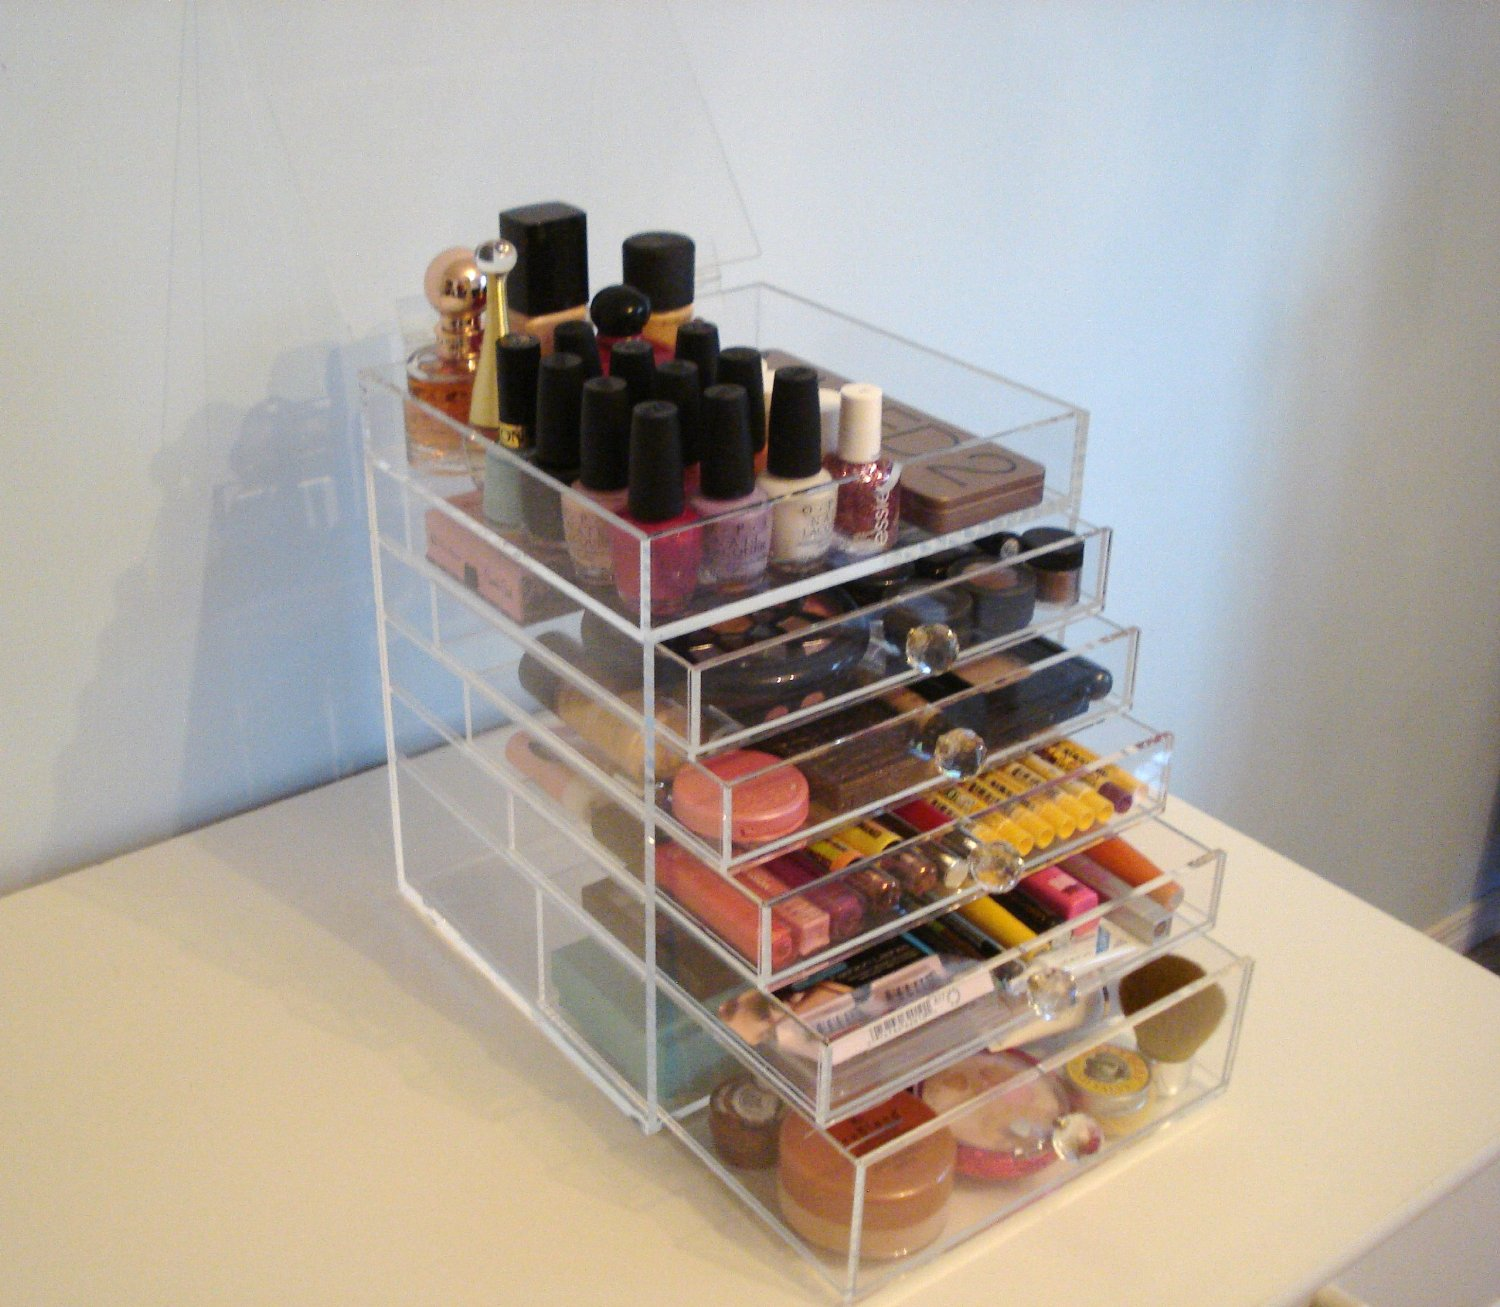 Design Makeup Drawers just a small town girl acrylic makeup drawers the culprit they suck us in with their beautiful organization and fact that you can actually see all of your products its gorgeous thing